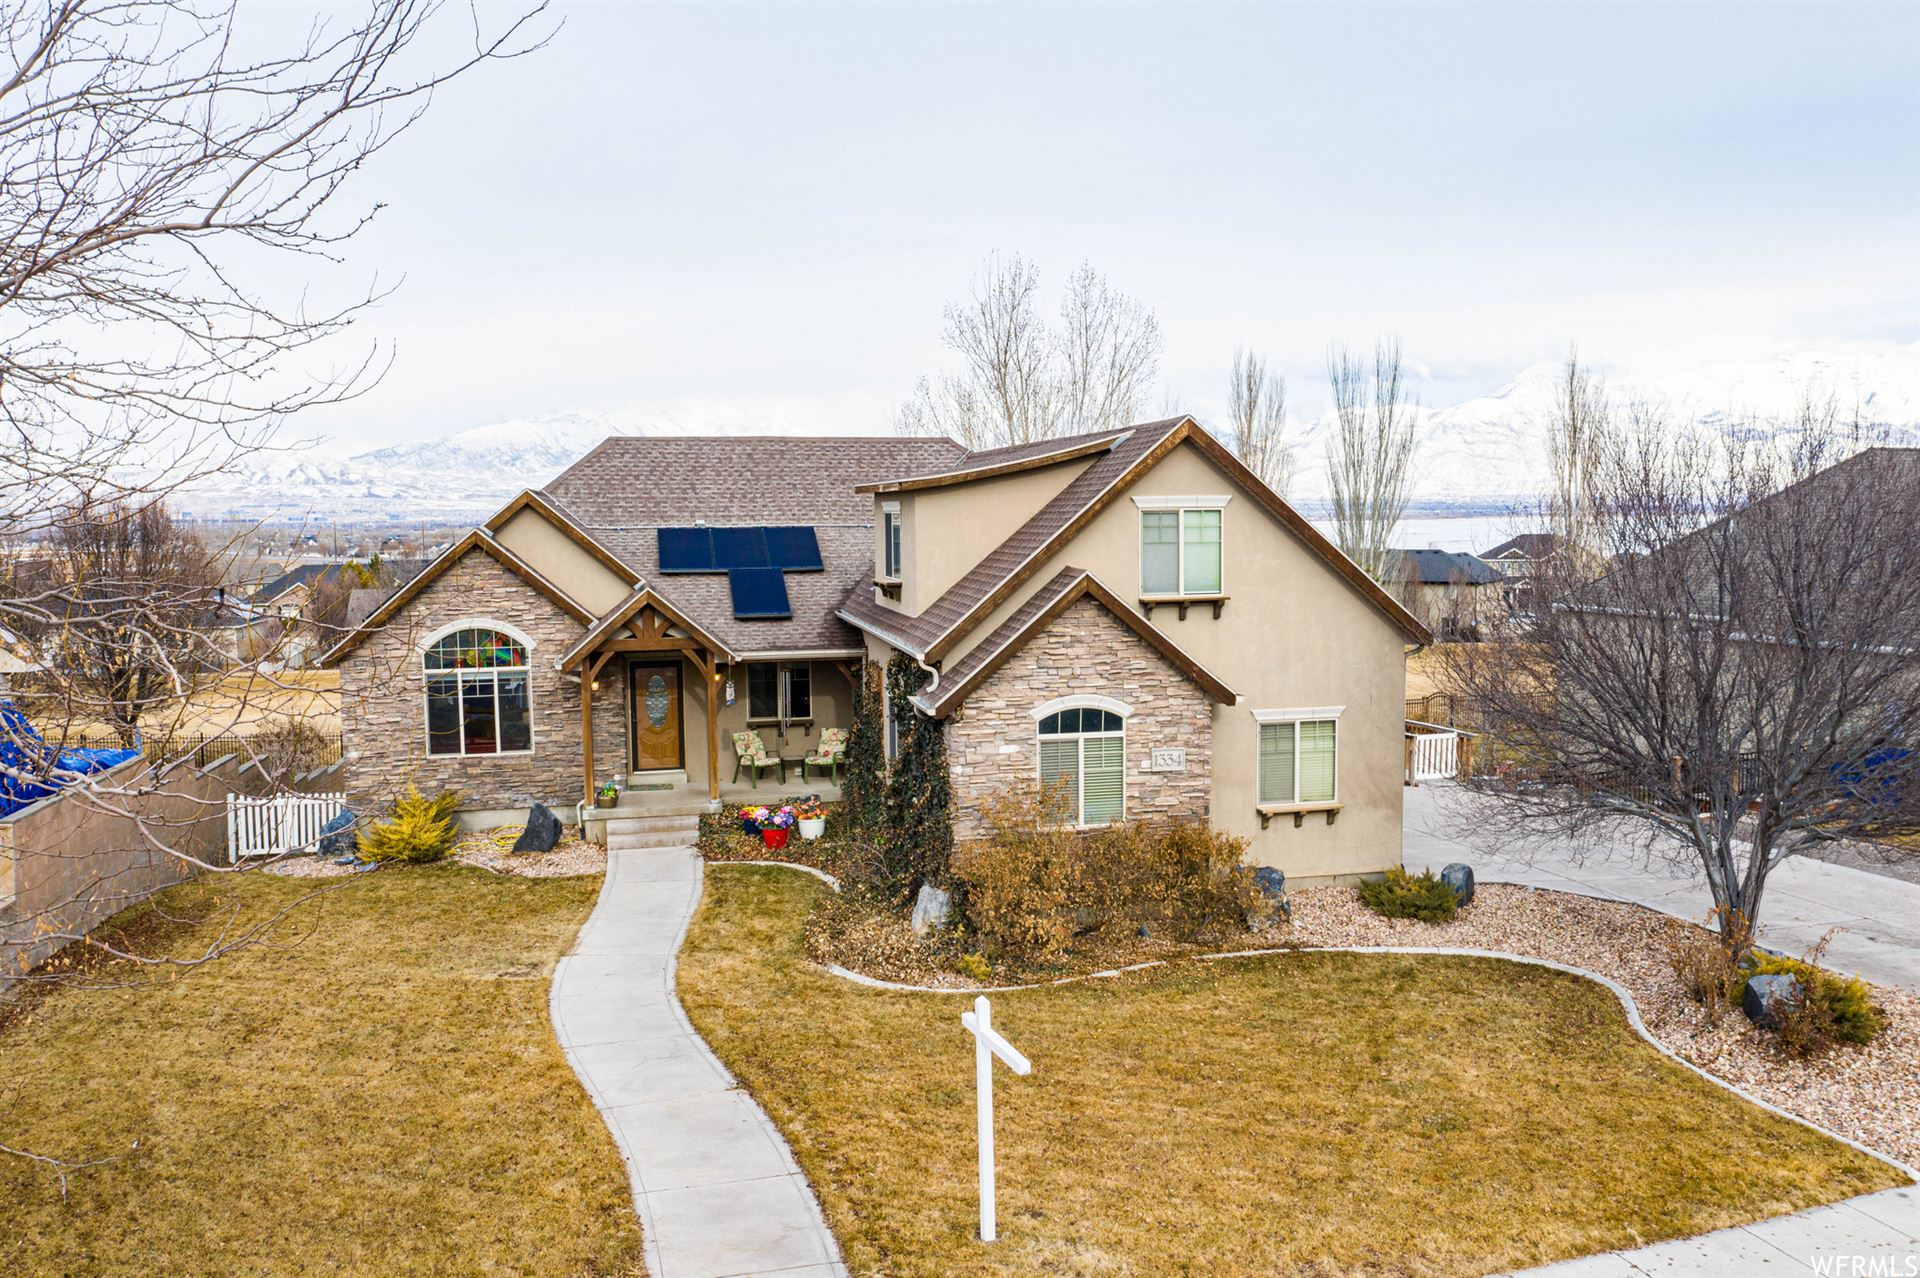 Photo of 1334 S PARKSIDE DR, Saratoga Springs, UT 84045 (MLS # 1722058)